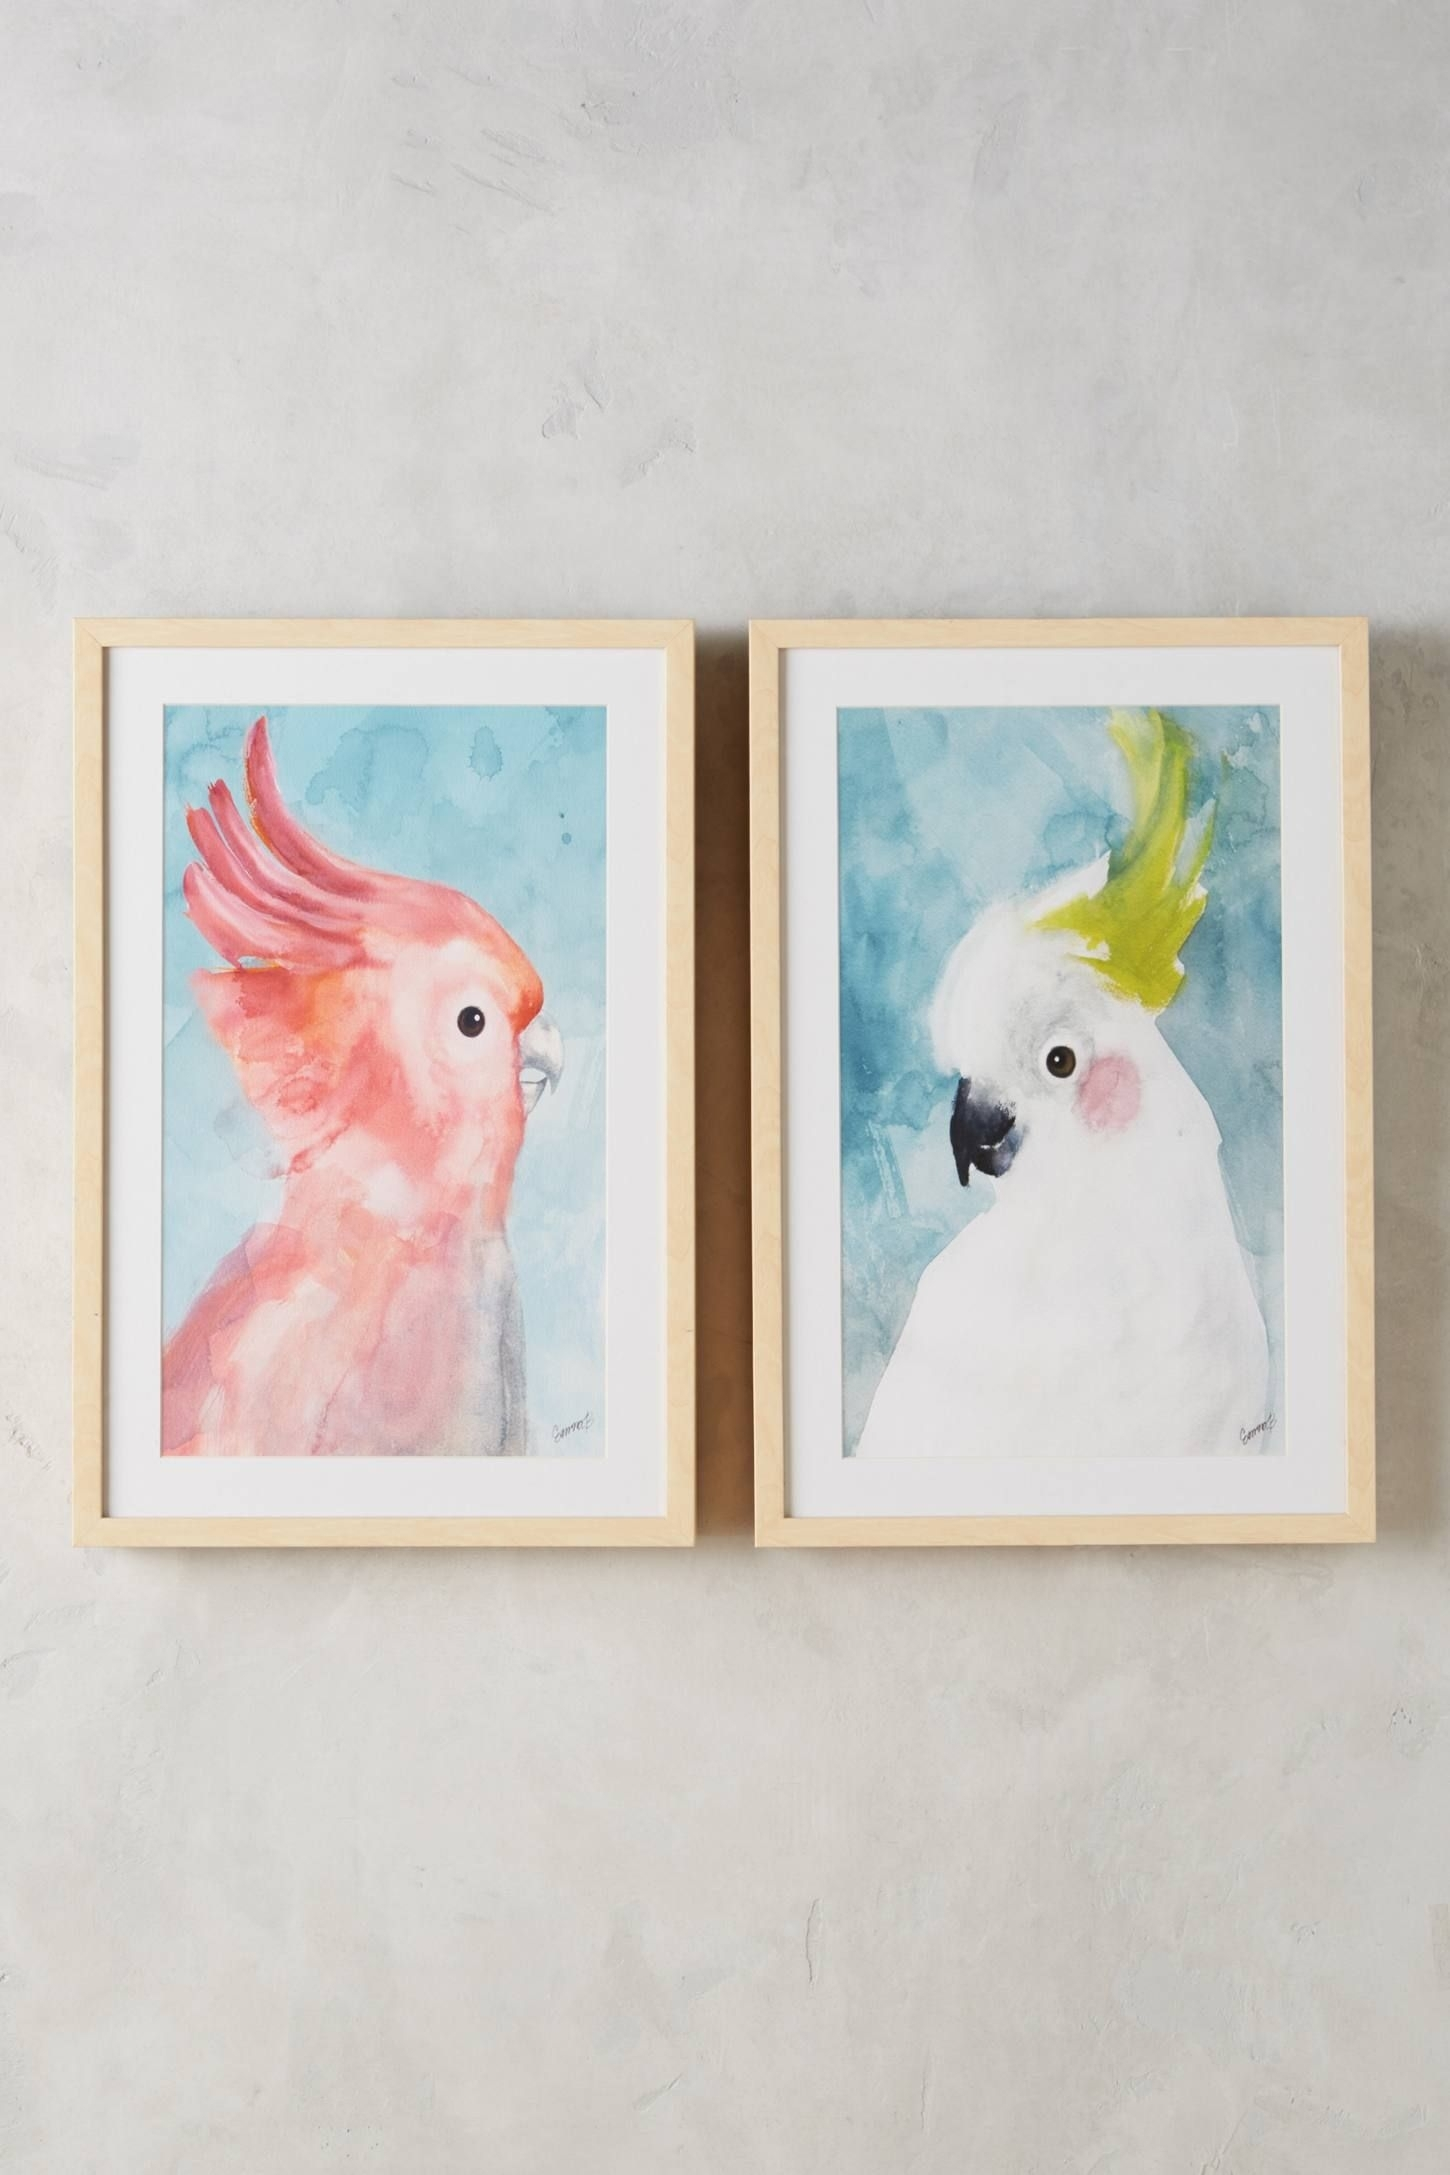 Shop The Fanciful Wall Art And More Anthropologie At Anthropologie Regarding Recent Anthropologie Wall Art (Gallery 13 of 20)